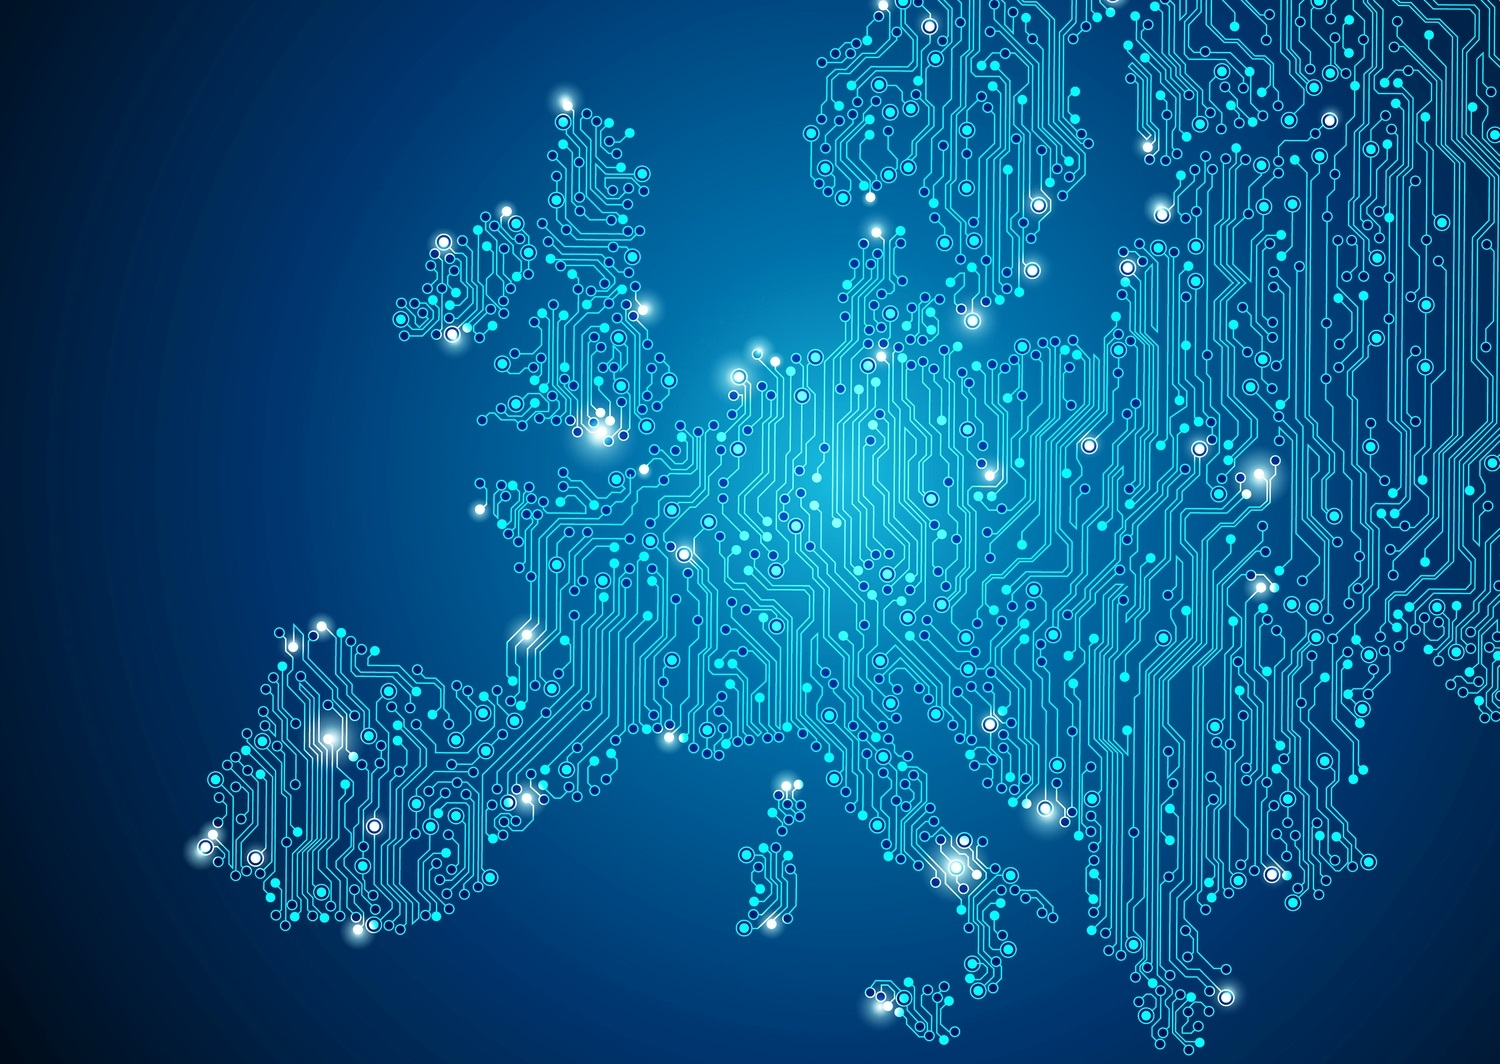 IMPROVING ONLINE ACCESS TO EU INTERNAL MARKET